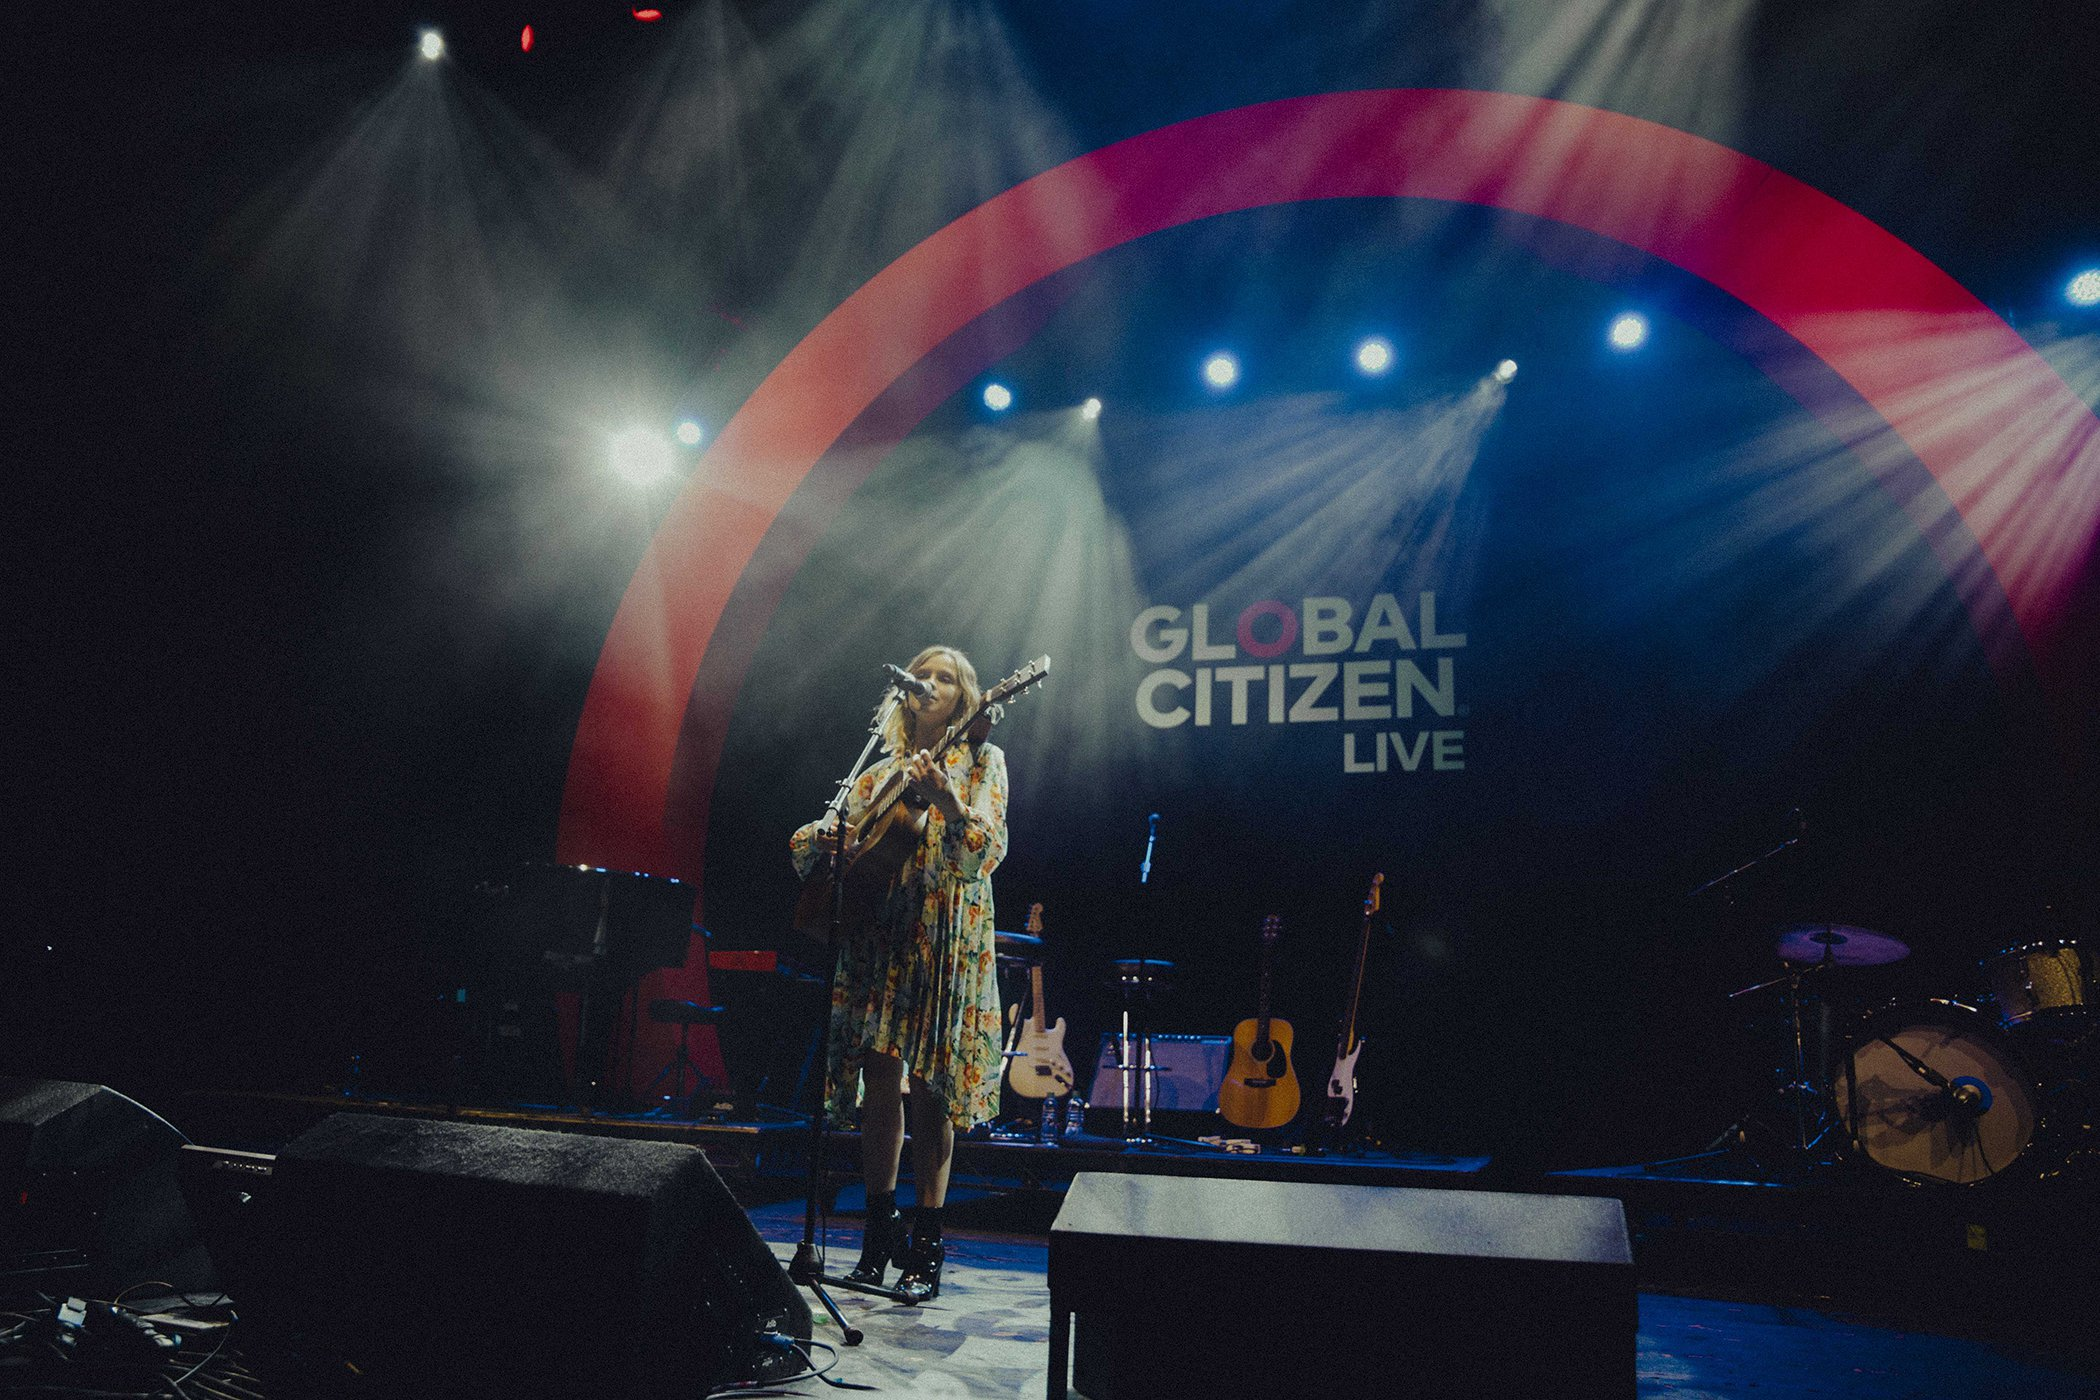 GCLiveLondon_GabrielleApelin__Emma Viola Lilja for Global Citizen_007.jpg